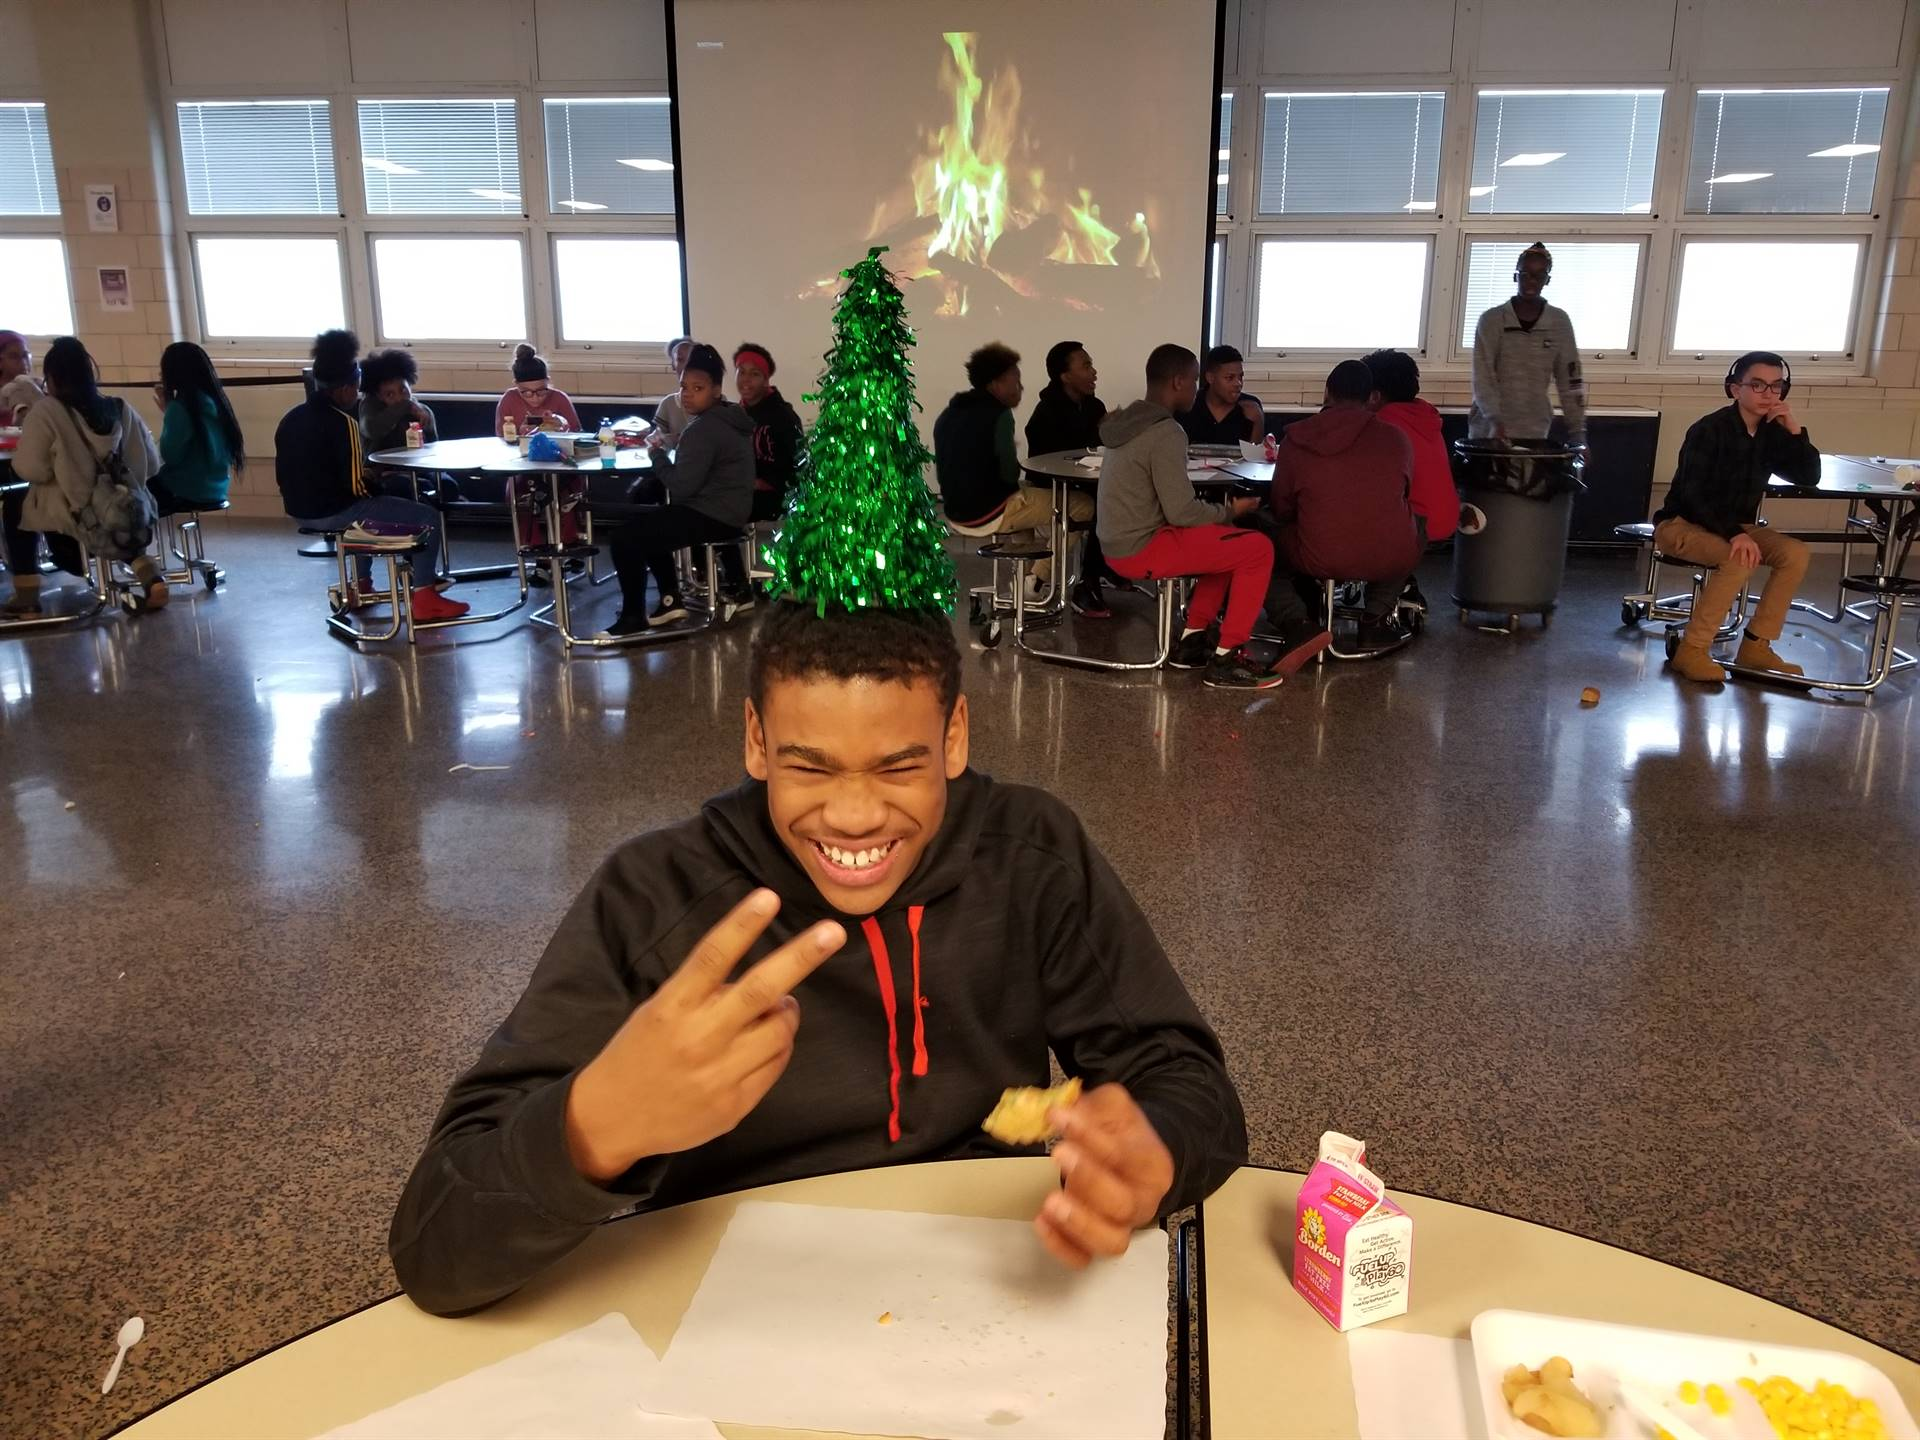 Student with tree centerpiece on his head.